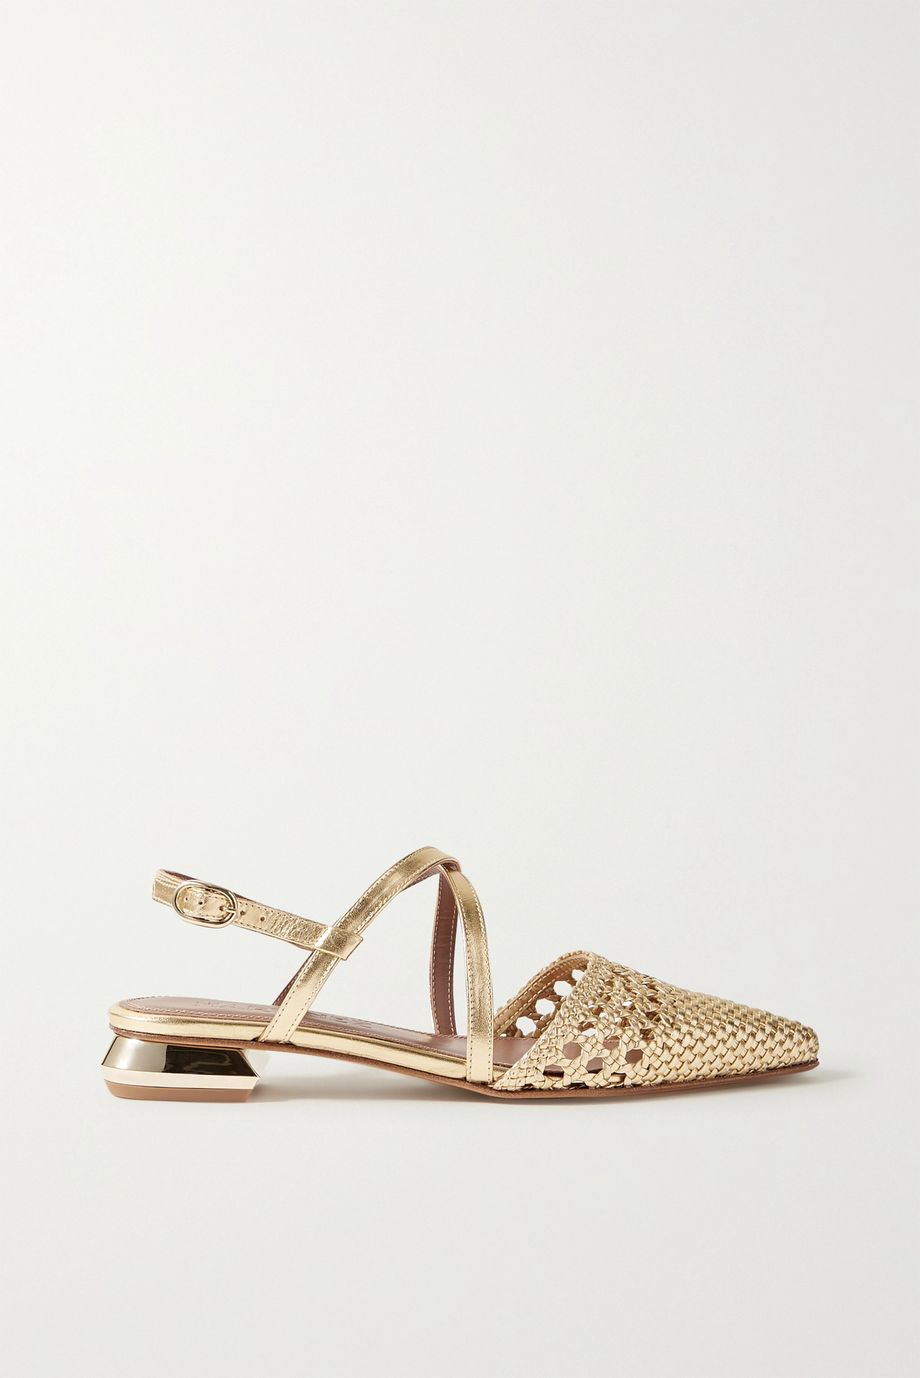 Souliers Martinez Es Verda woven metallic leather point-toe flats